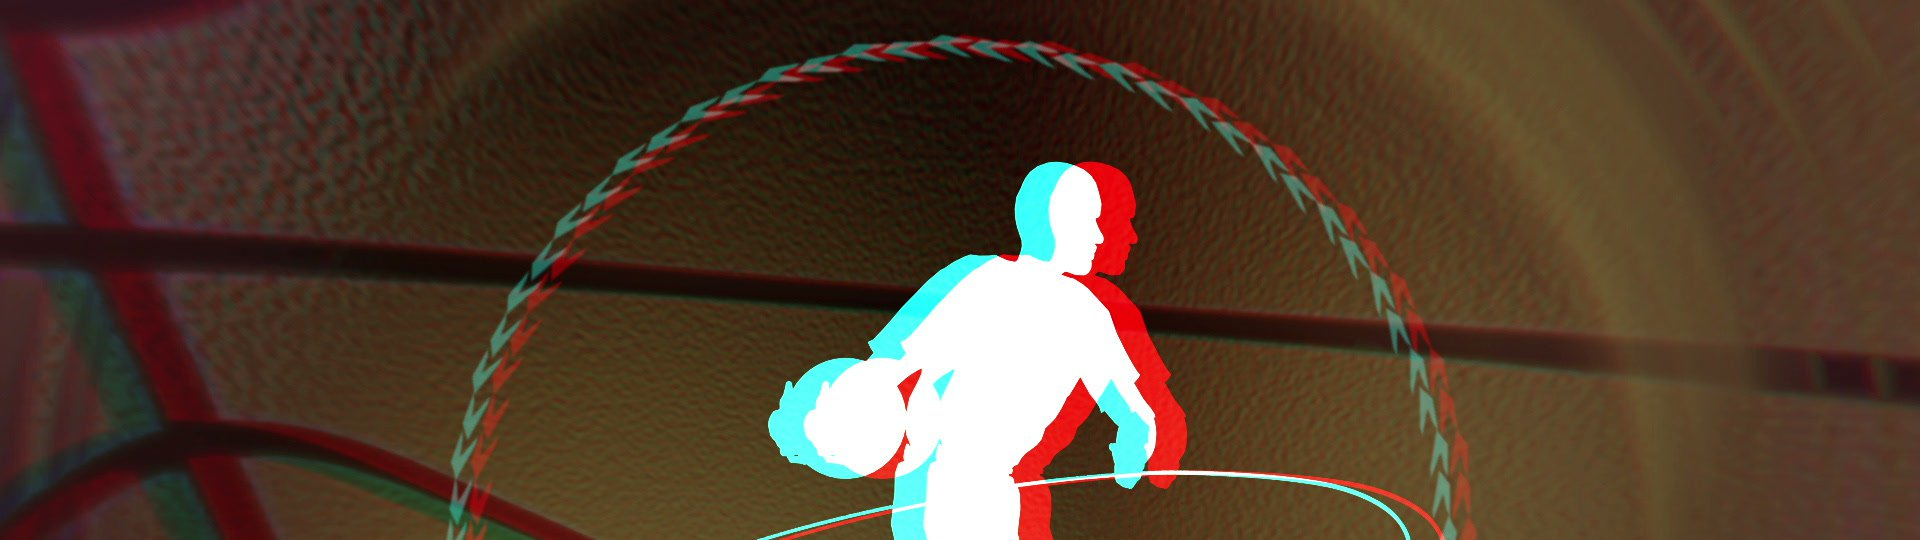 Anaglyph basketball background loop | stereoscopic 3D basketball background, seamless loop, stereoscopic 3D - anaglyph, for red-cyan glasses, HD1080p.  I can provide stereogram source sequences for left and right eye. - ID:7812